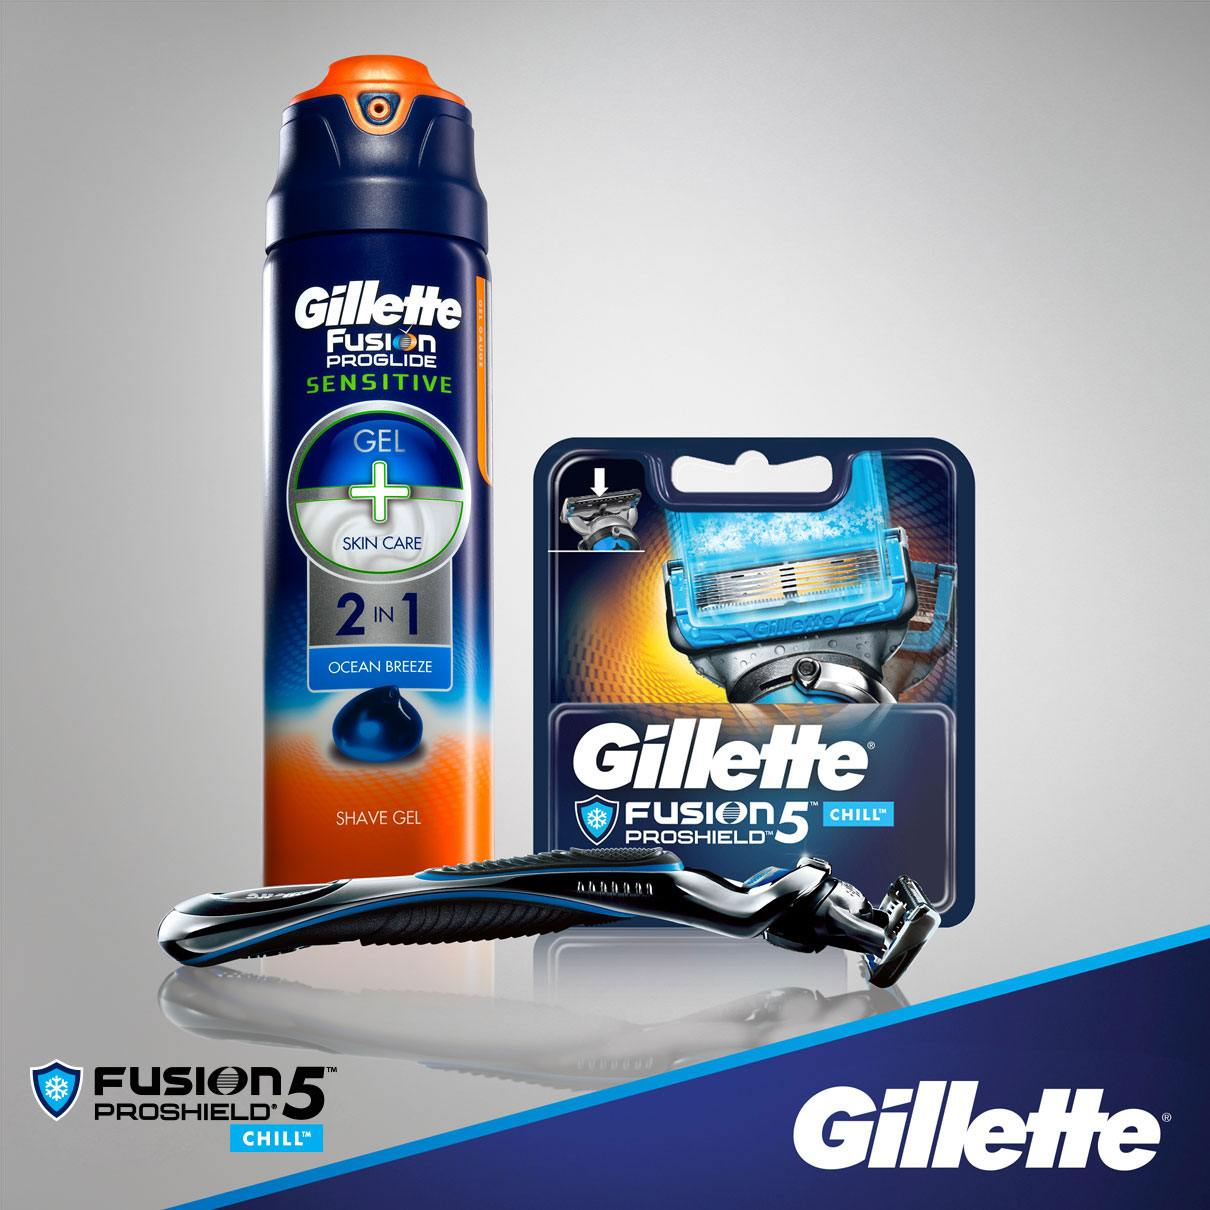 Gillette Proshield Chill Blade